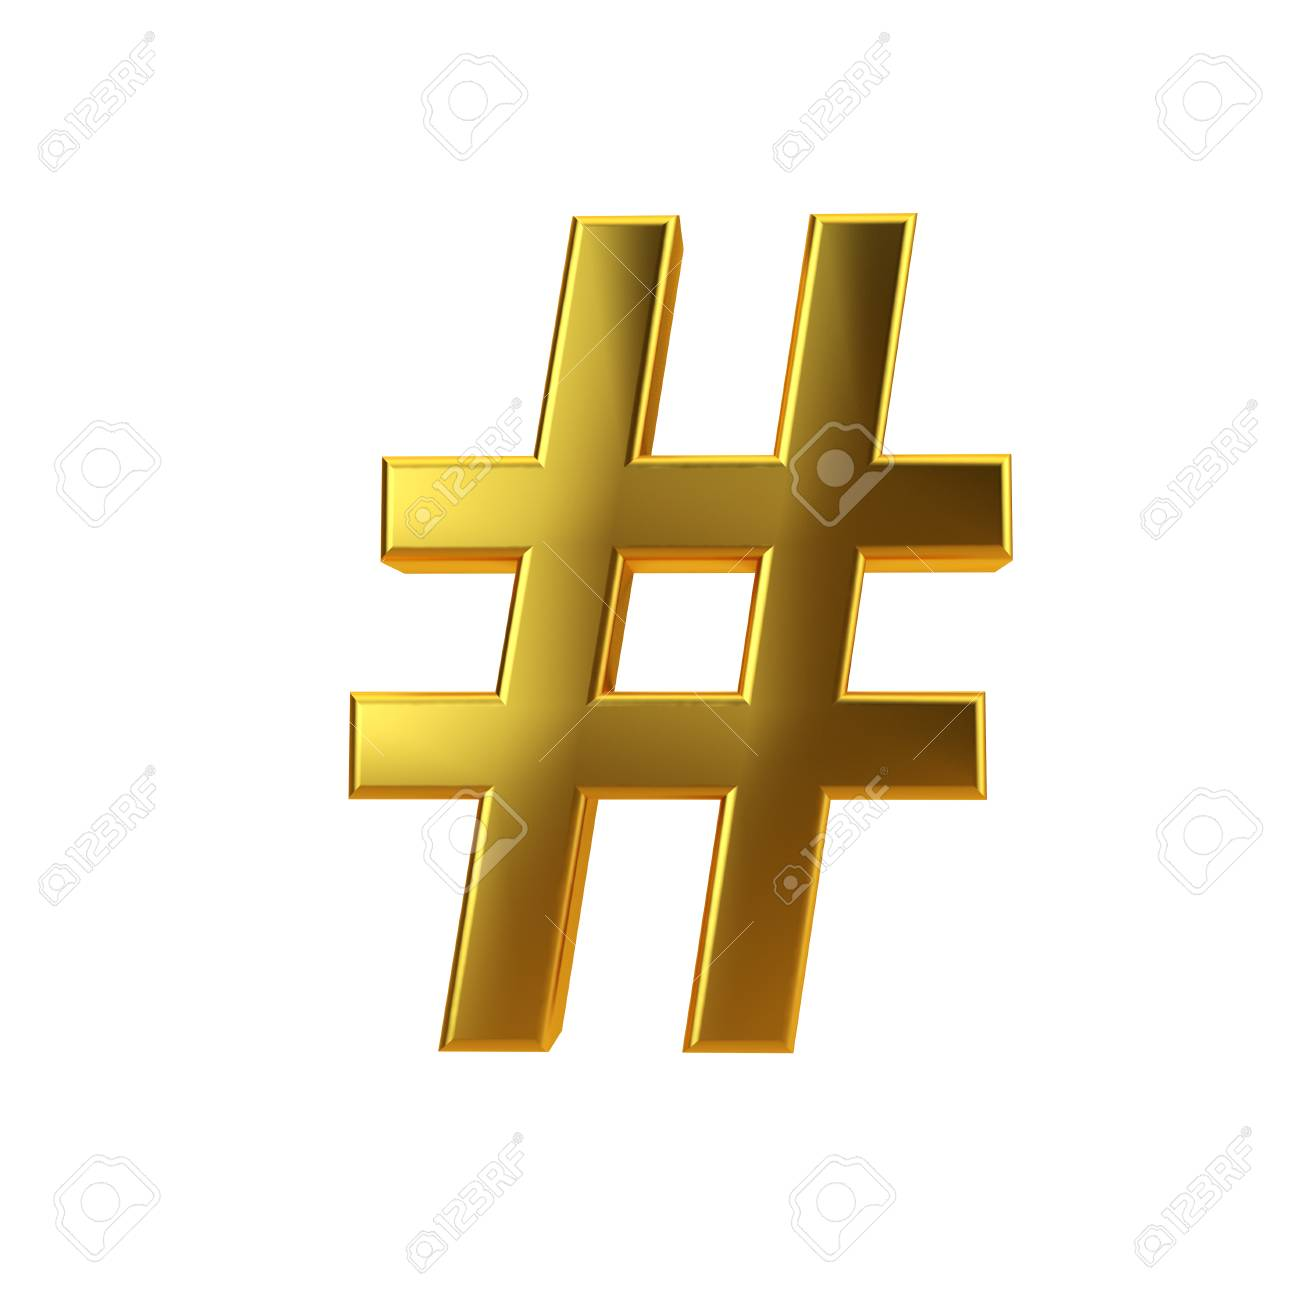 Shiny Gold Hashtag Symbol On A Plain White Background 3d Rendering